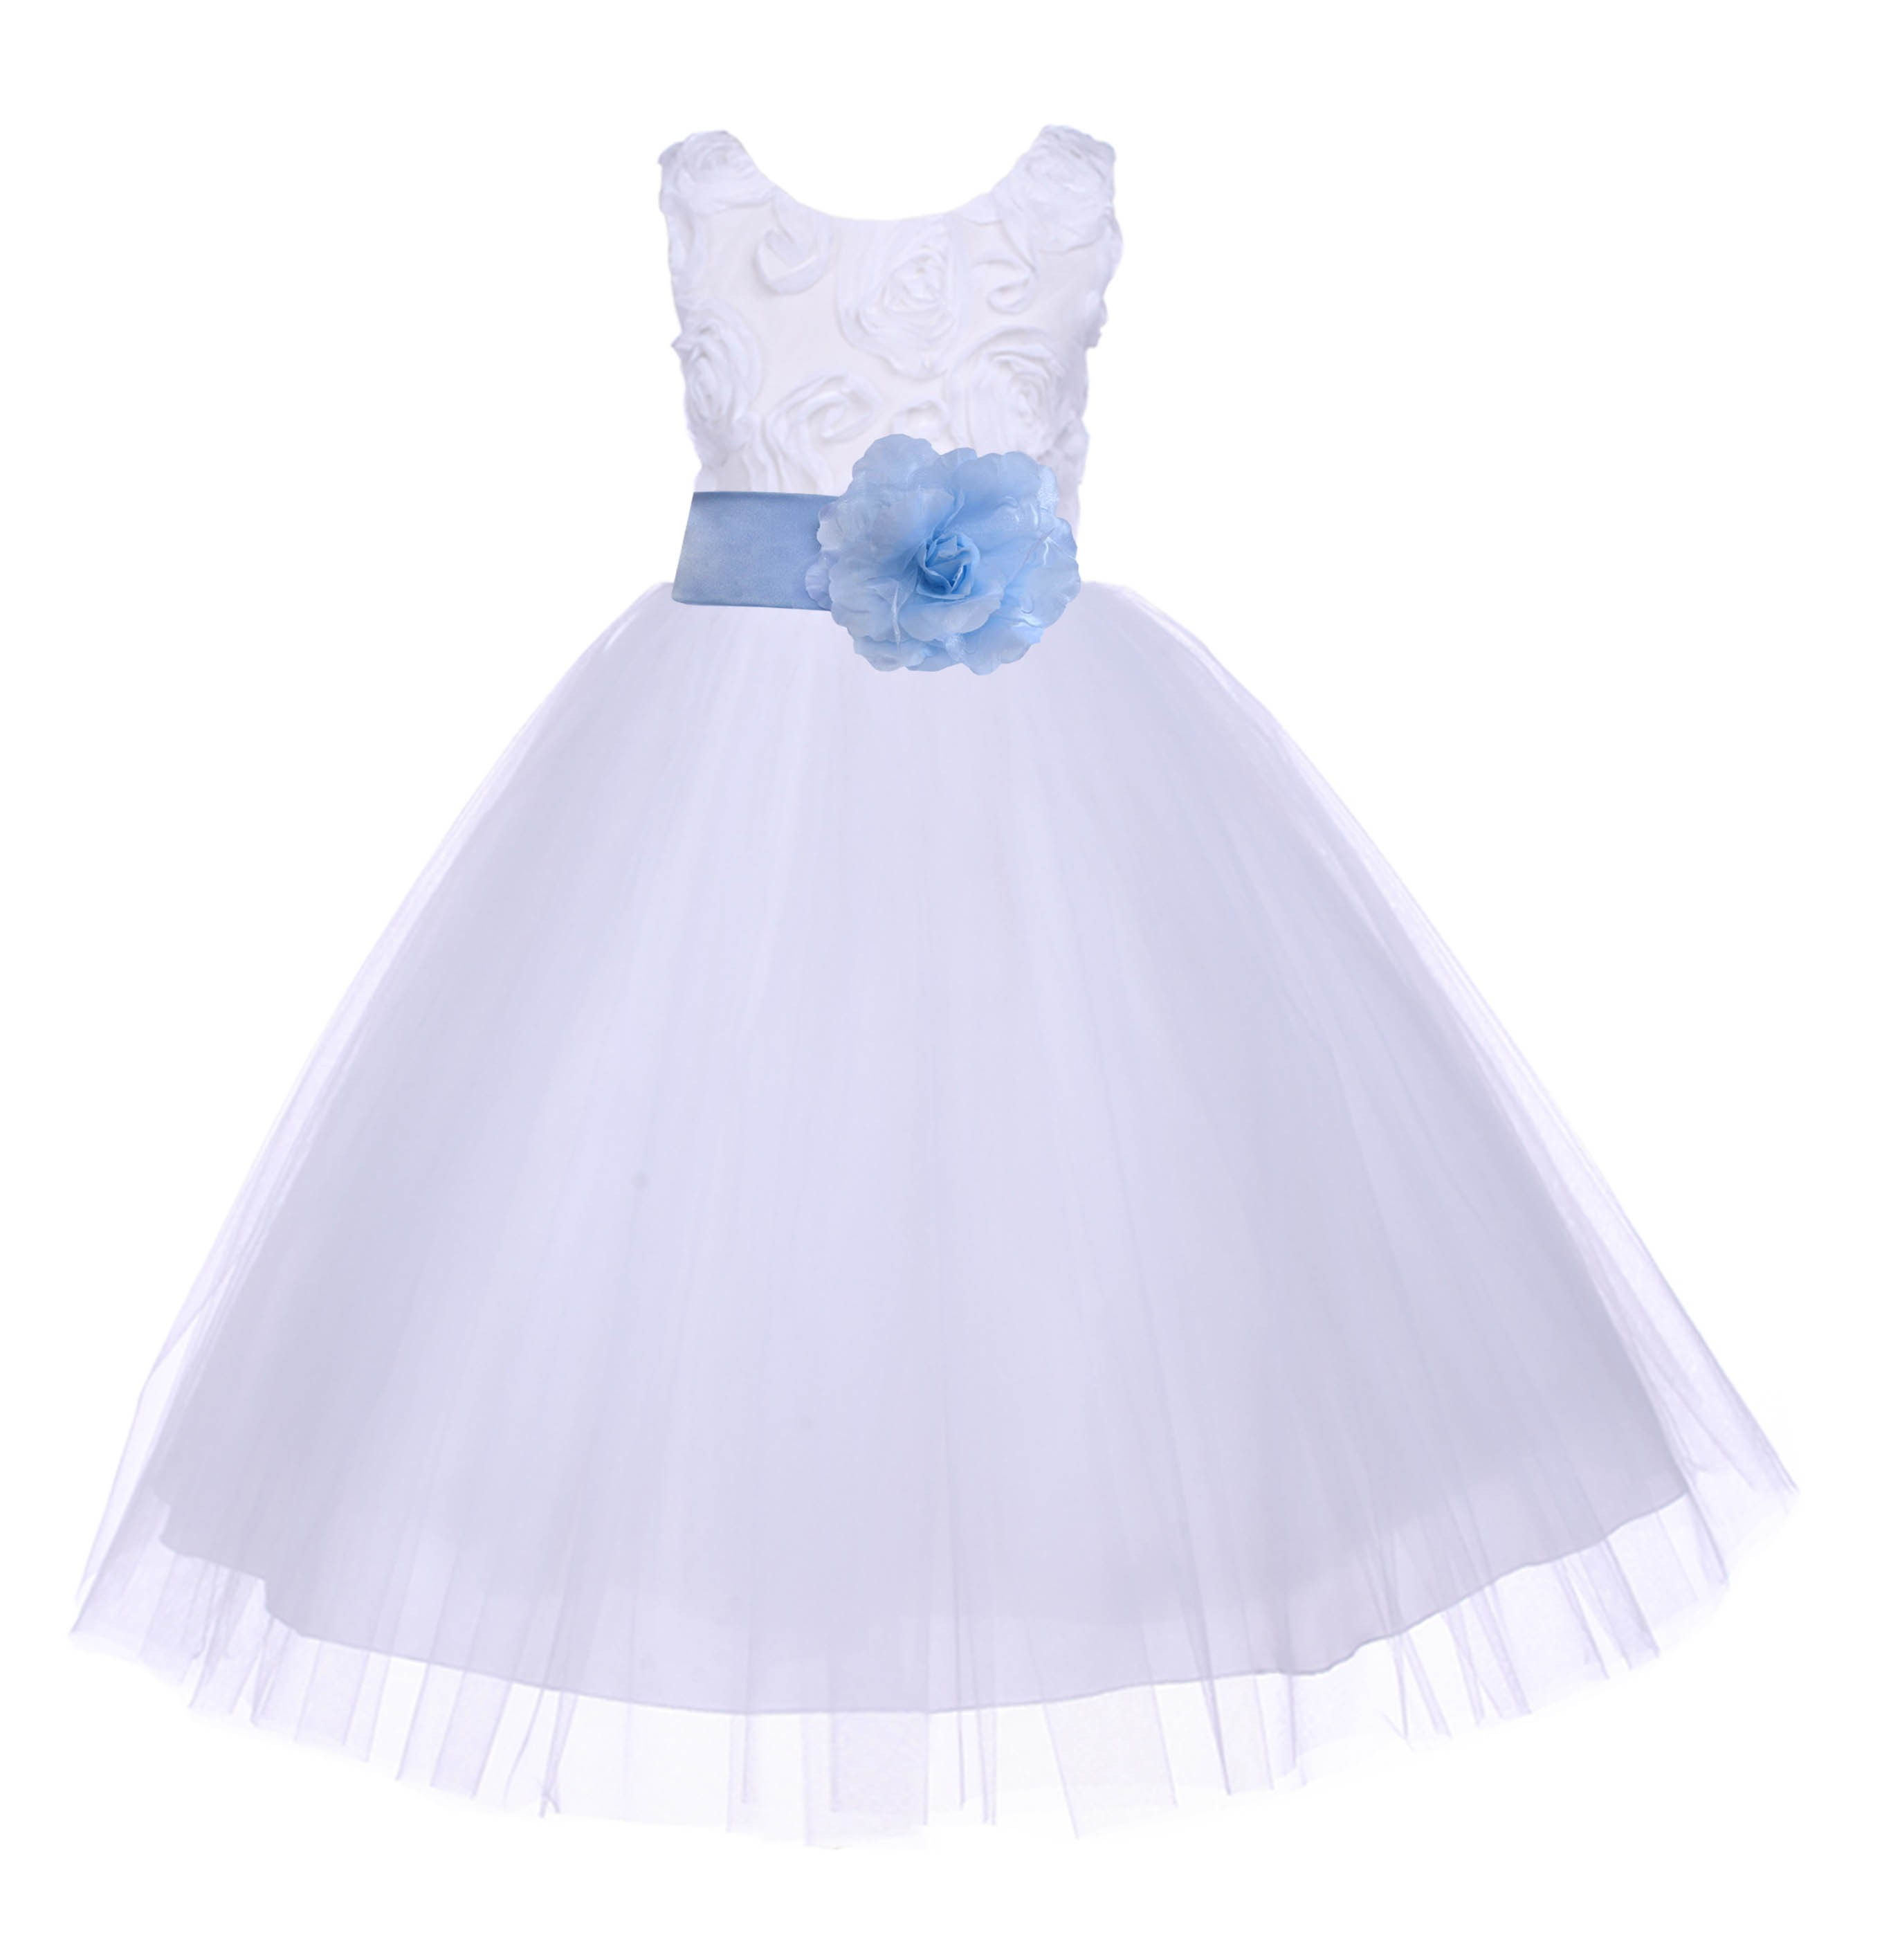 Whitesky tulle 3d floral rose flower girl dress wedding 152s s whitesky tulle 3d floral rose flower girl dress wedding 152s izmirmasajfo